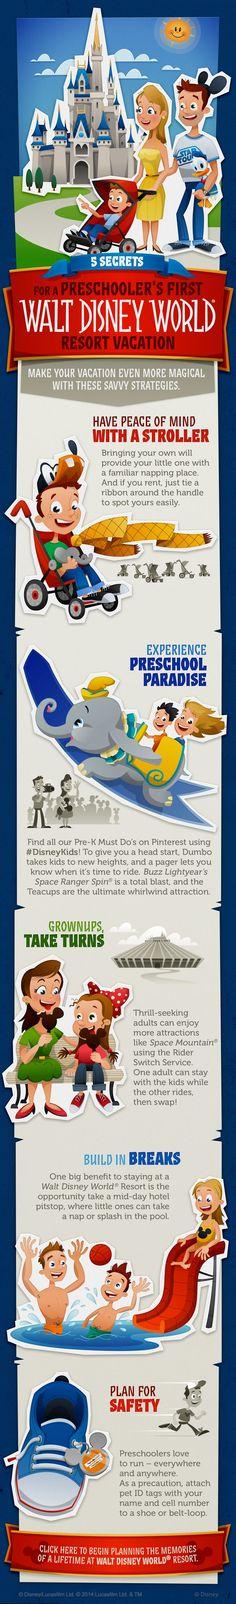 5 Secrets for a Preschooler's First Walt Disney World Resort Vacation! LOVE THE INFORMATION TAG ON A SHOE IDEA!!